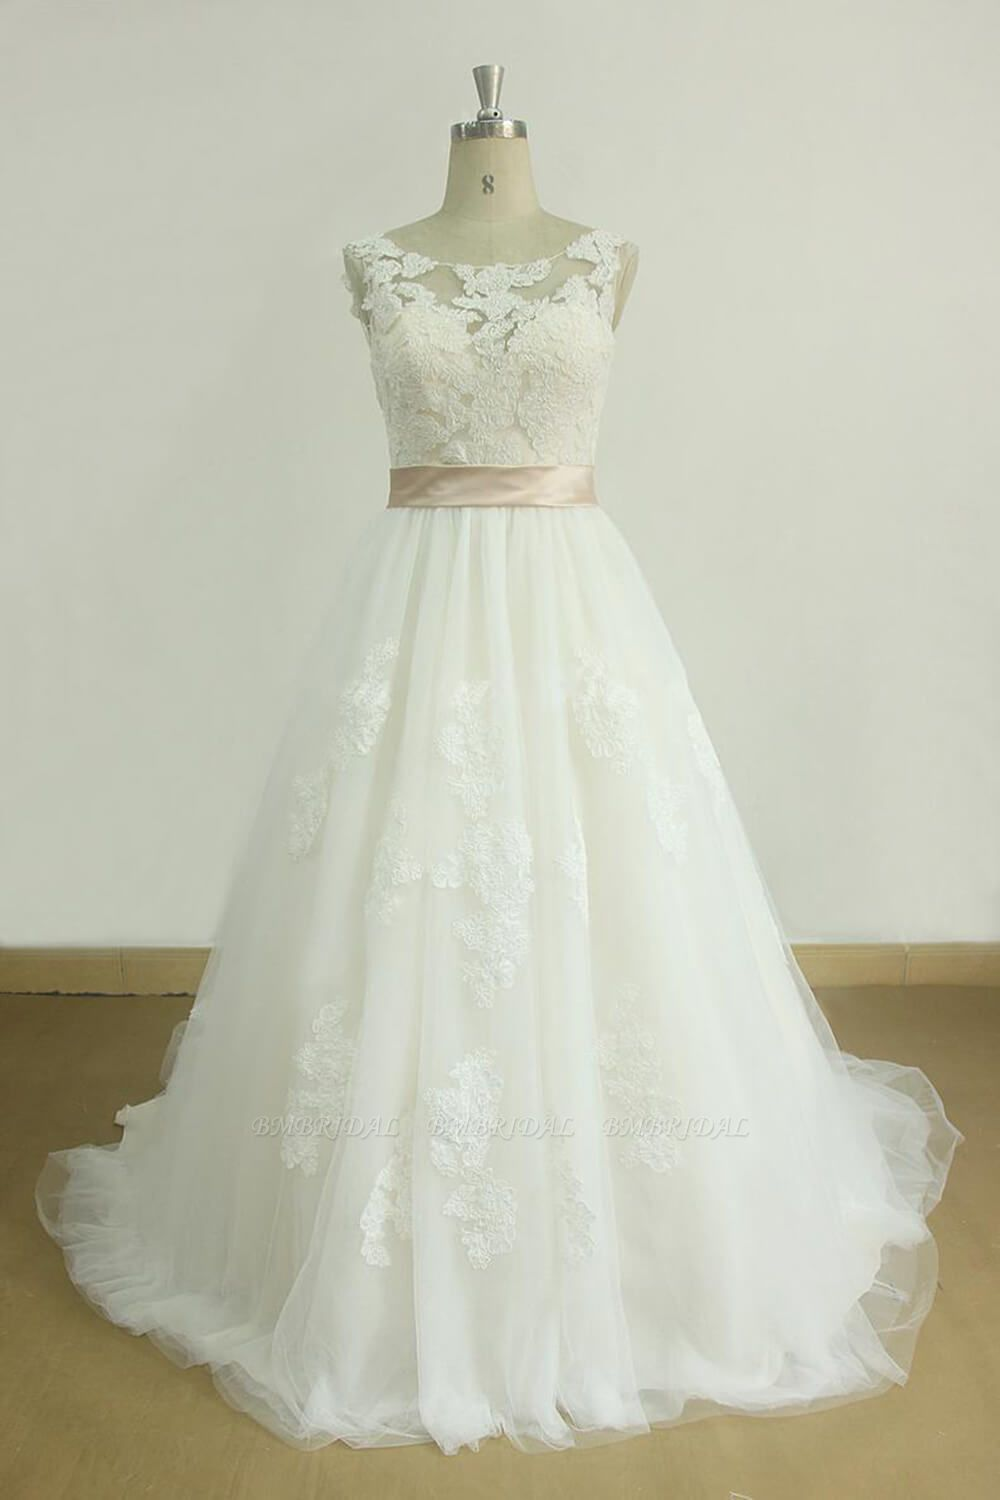 BMbridal Chic Jewel Lace Appliques Wedding Dress Sleeveless Tulle A-line Bridal Gowns On Sale